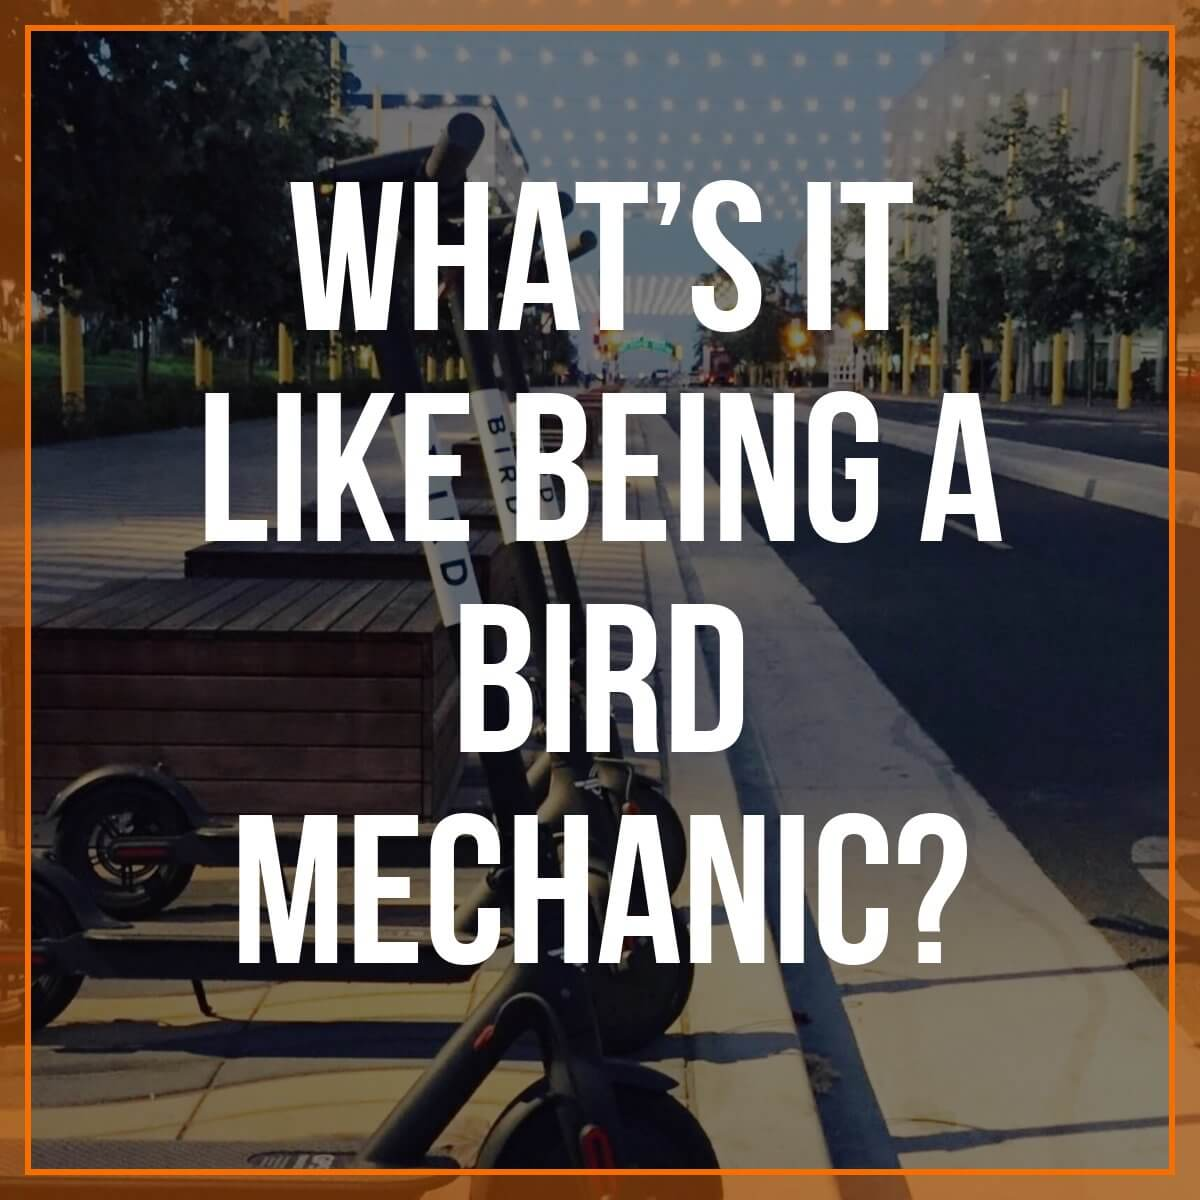 If your city has Bird scooters, you've probably seen people out and about on them. Perhaps you've even seen some damaged scooters - but have you ever wondered who repairs them? They're called 'Bird Mechanics' and today, reader Chris T. is going to share how you can get started as a Bird Mechanic, what they do, and how much they are paid.